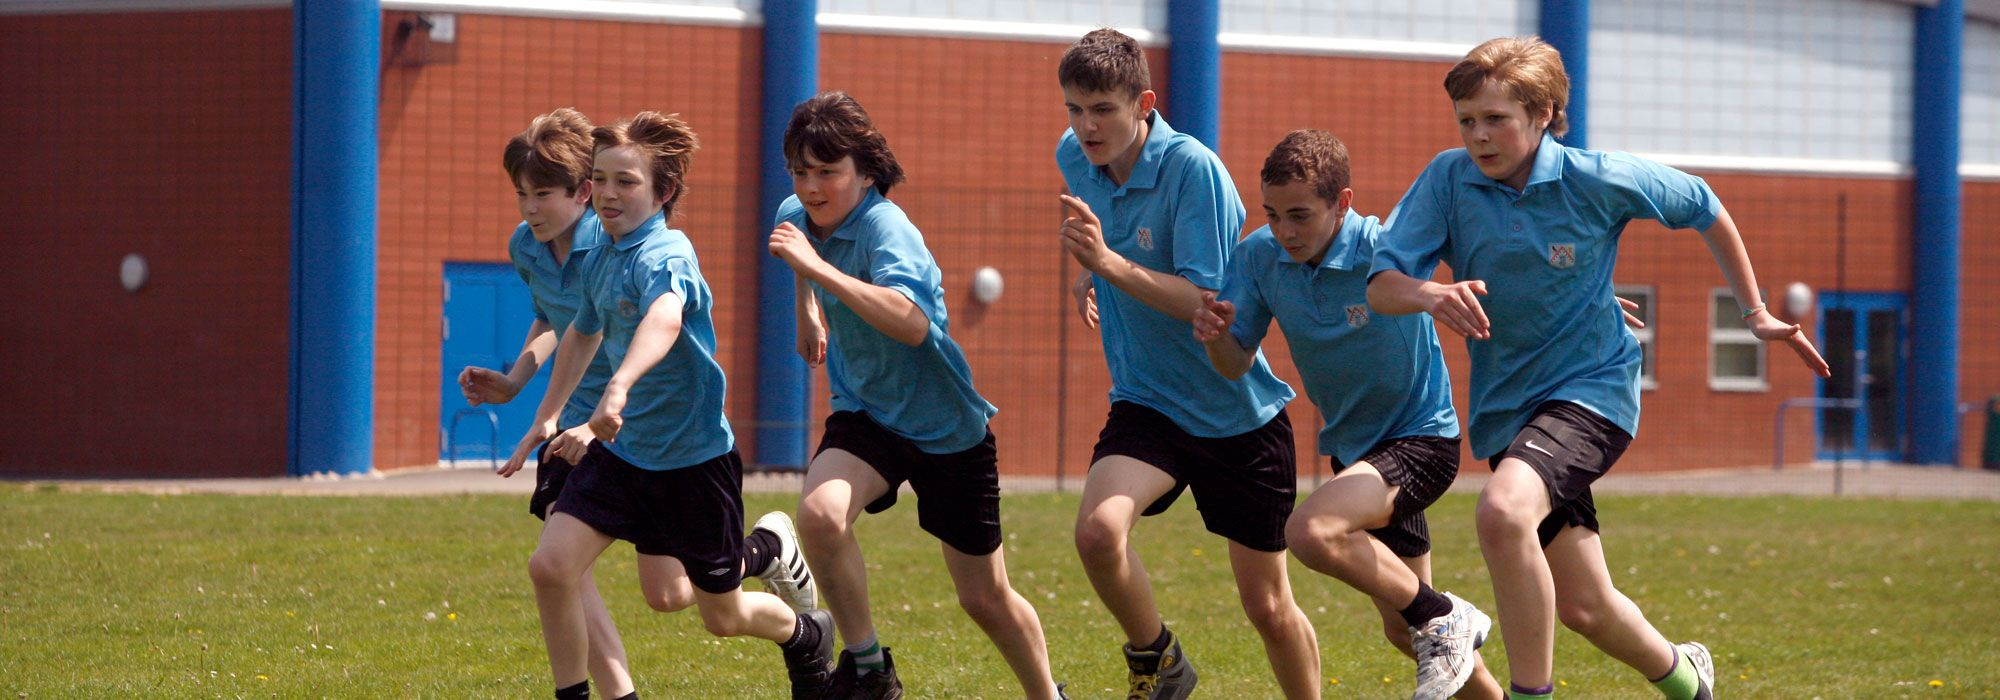 Boys athletics club in Wrexham